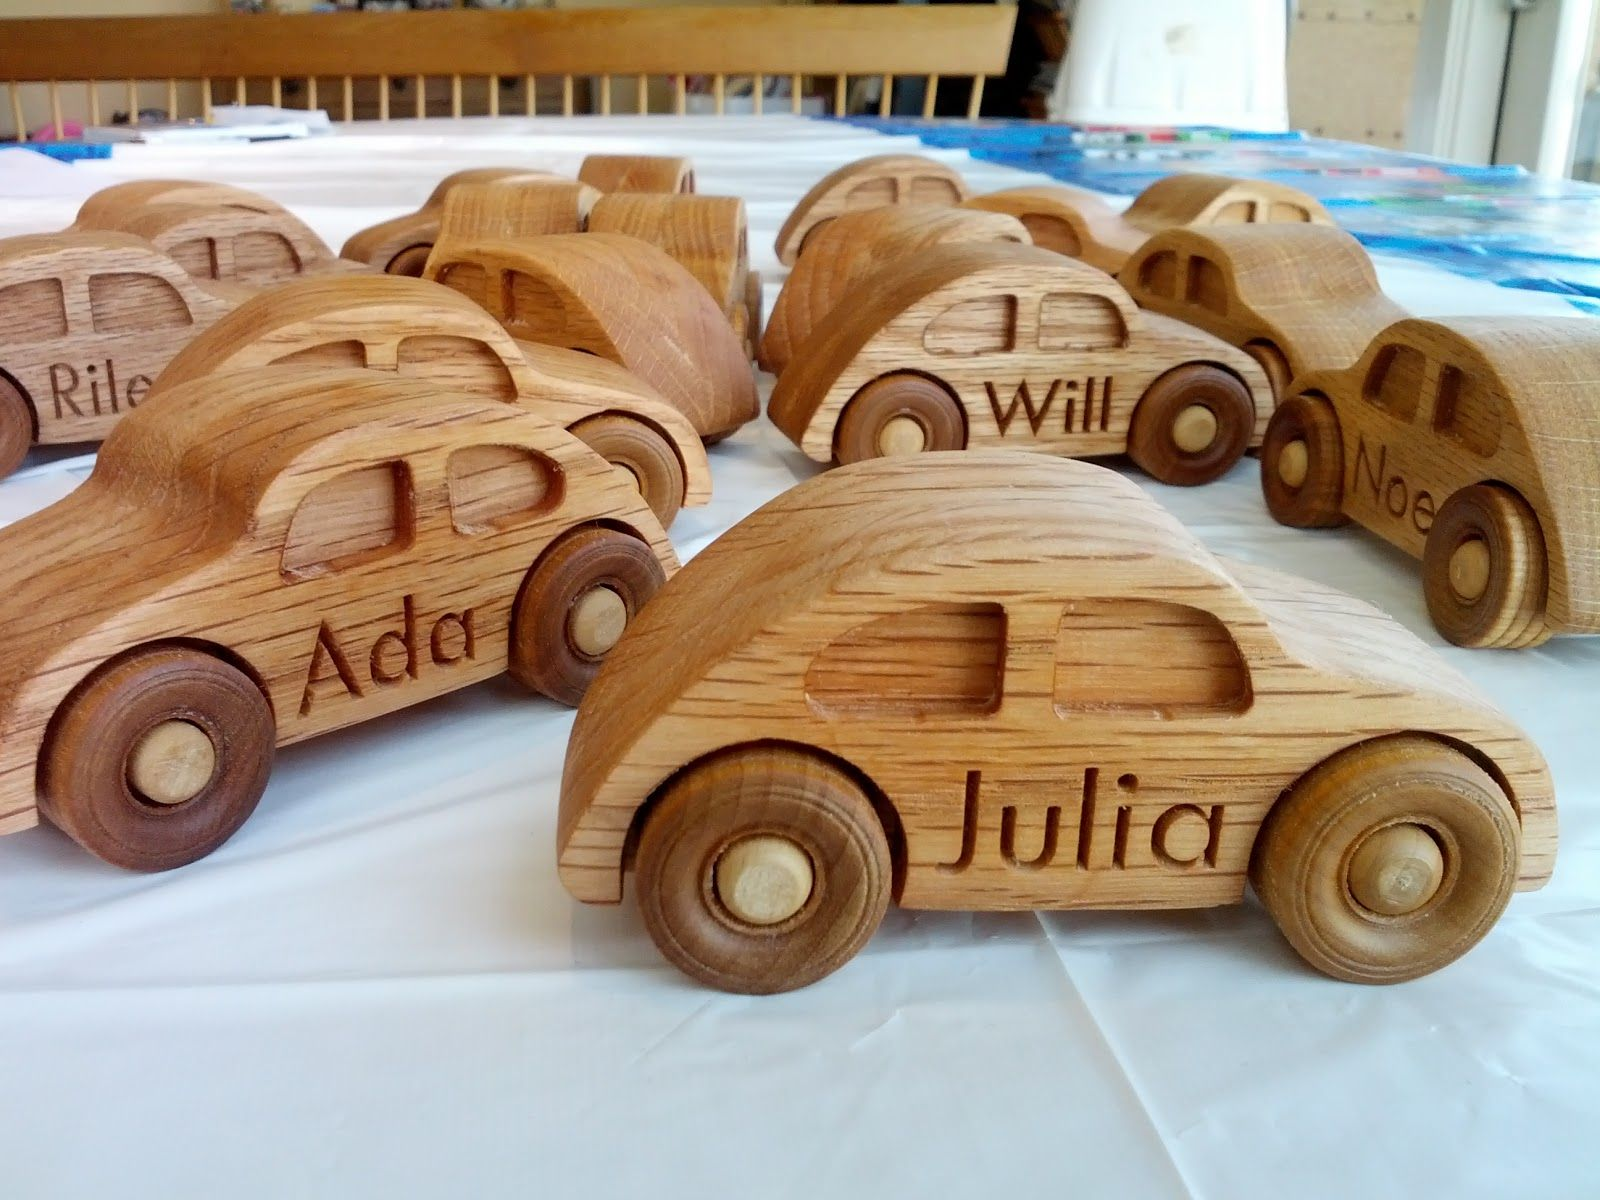 cnc dad: how to make wooden toy cars in a hurry | next hobby